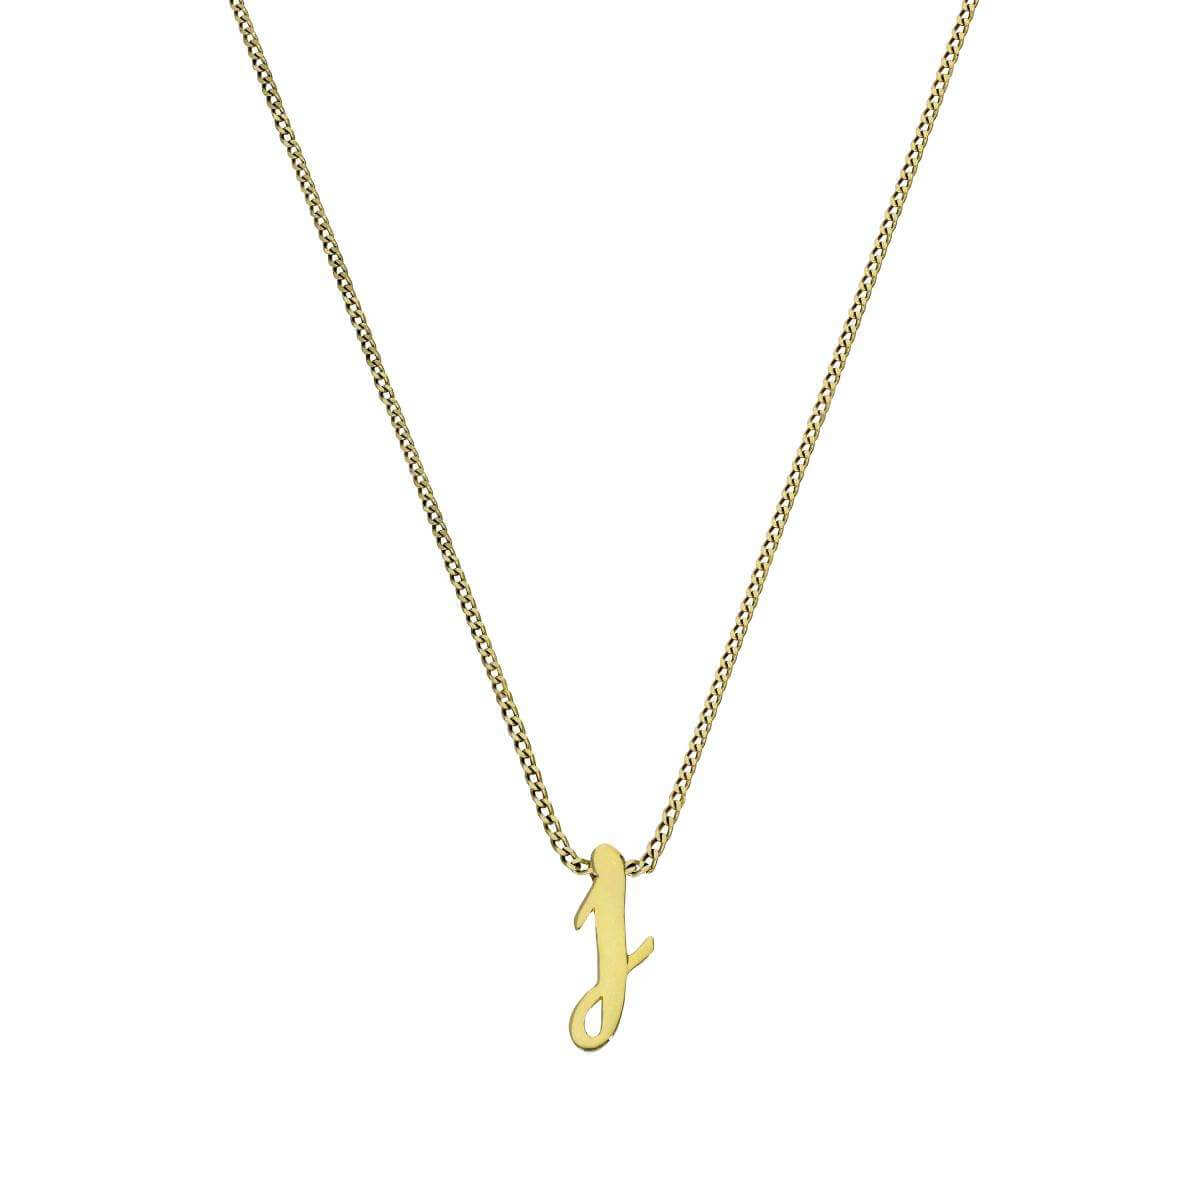 Tiny 9ct Gold Alphabet Letter J Pendant Necklace 16 - 20 Inches